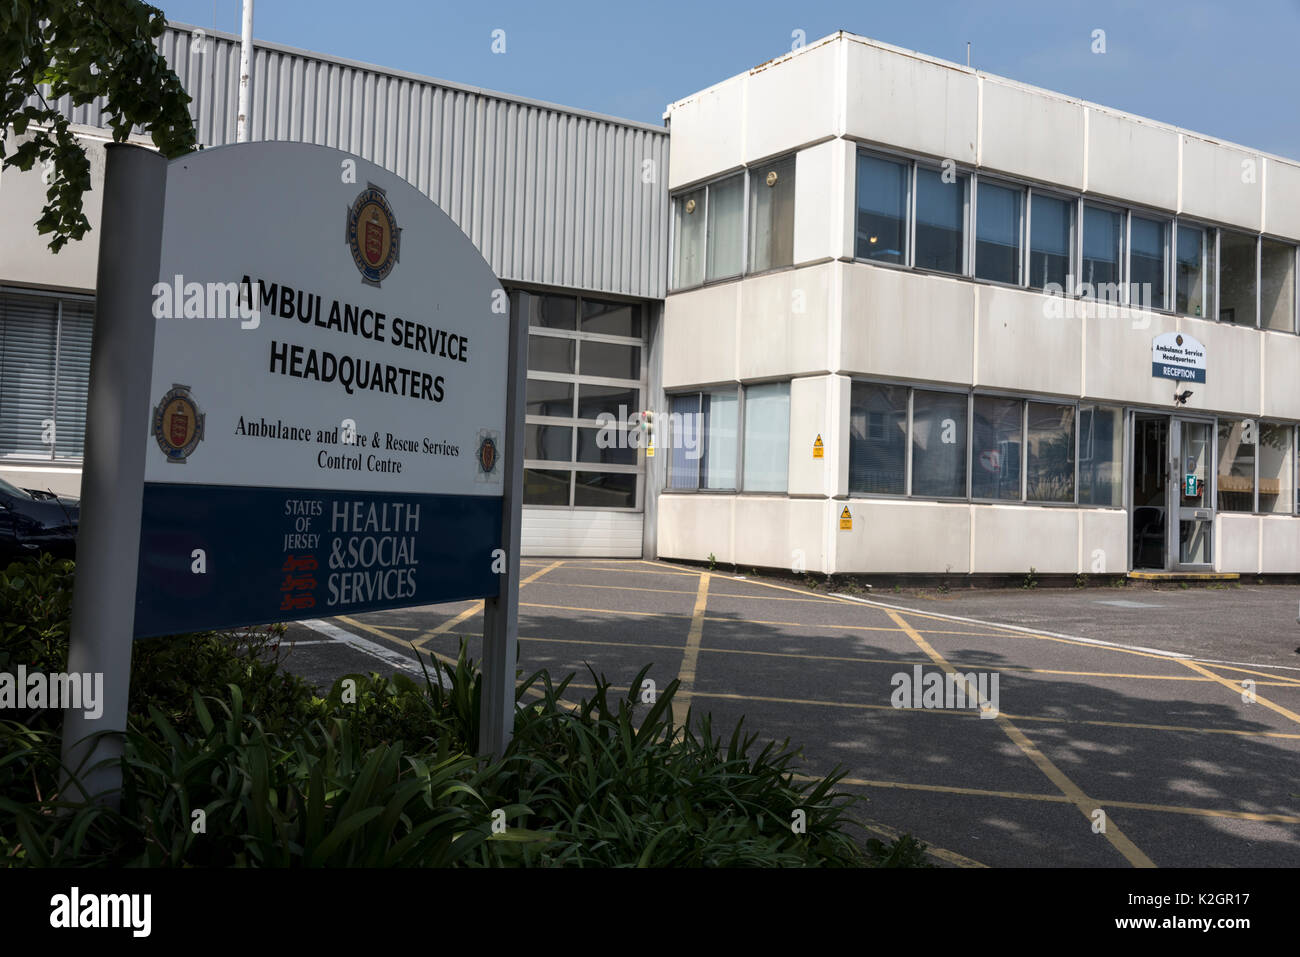 Service HQ at St. Helier in Jersey in the Channel islands, Britain - Stock Image